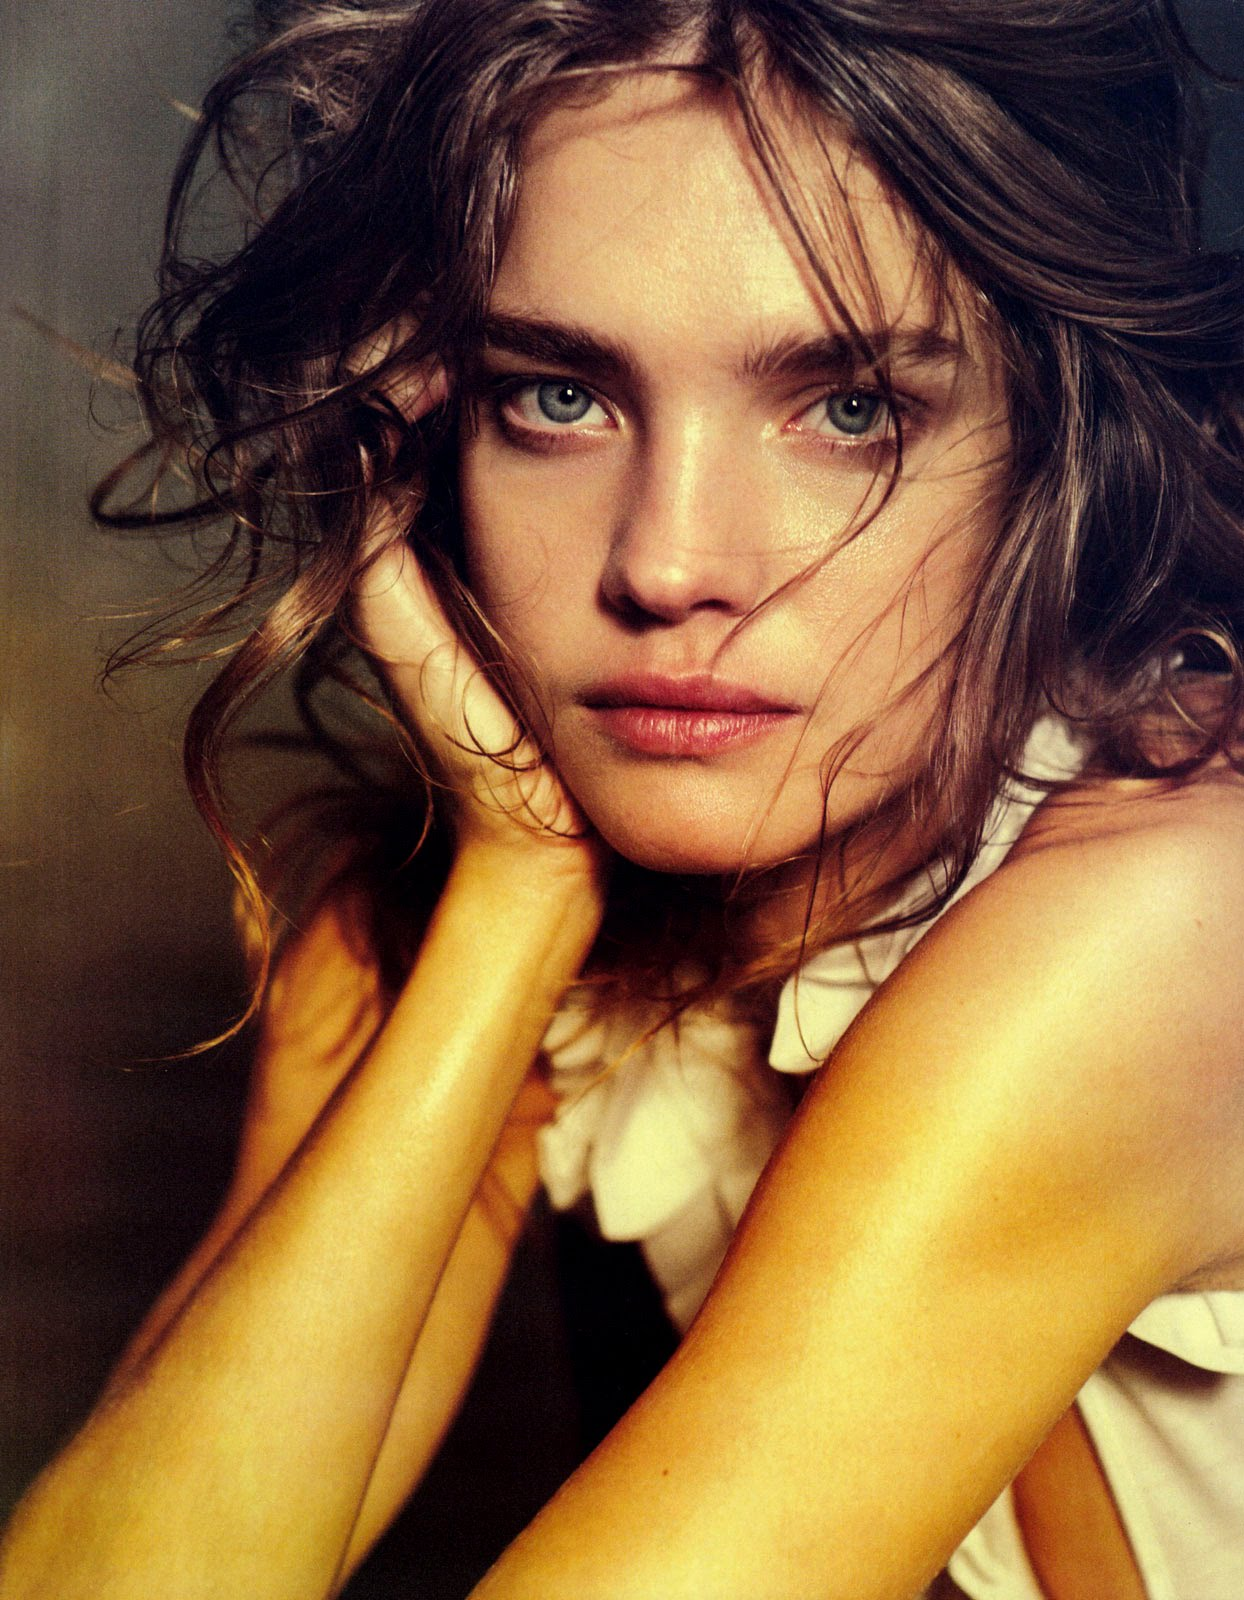 Natalia Vodianova By Paolo Roversi For Vogue Russia: FASHION SPREADS: Natalia Vodianova By Peter Lindbergh In